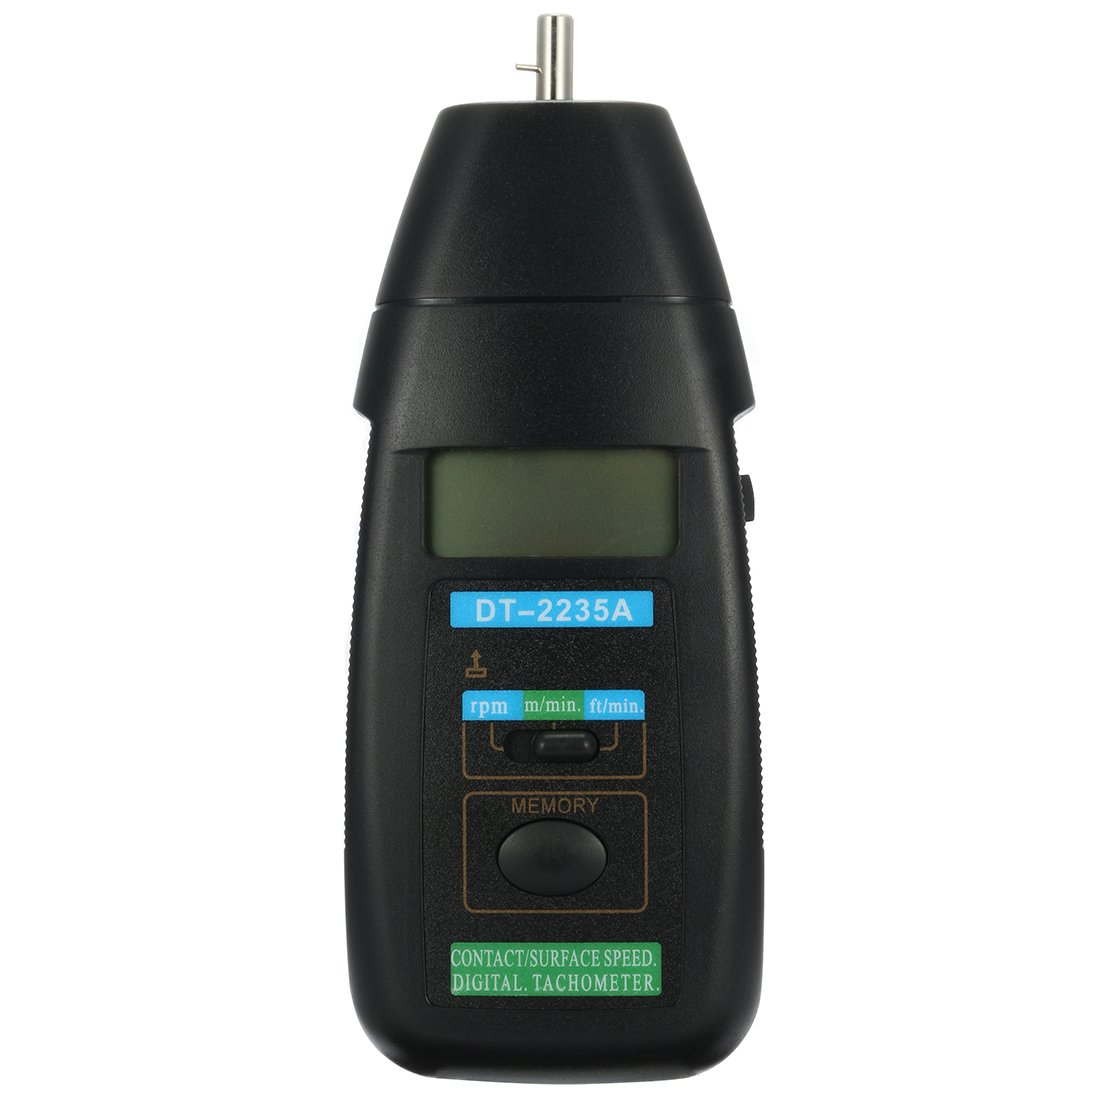 uxcell/® DT-2235A Contact Speed Digital Tachometer and Auto Ranging LCD Display Tach Motor Small Engine Speed RPM Gauge Meter